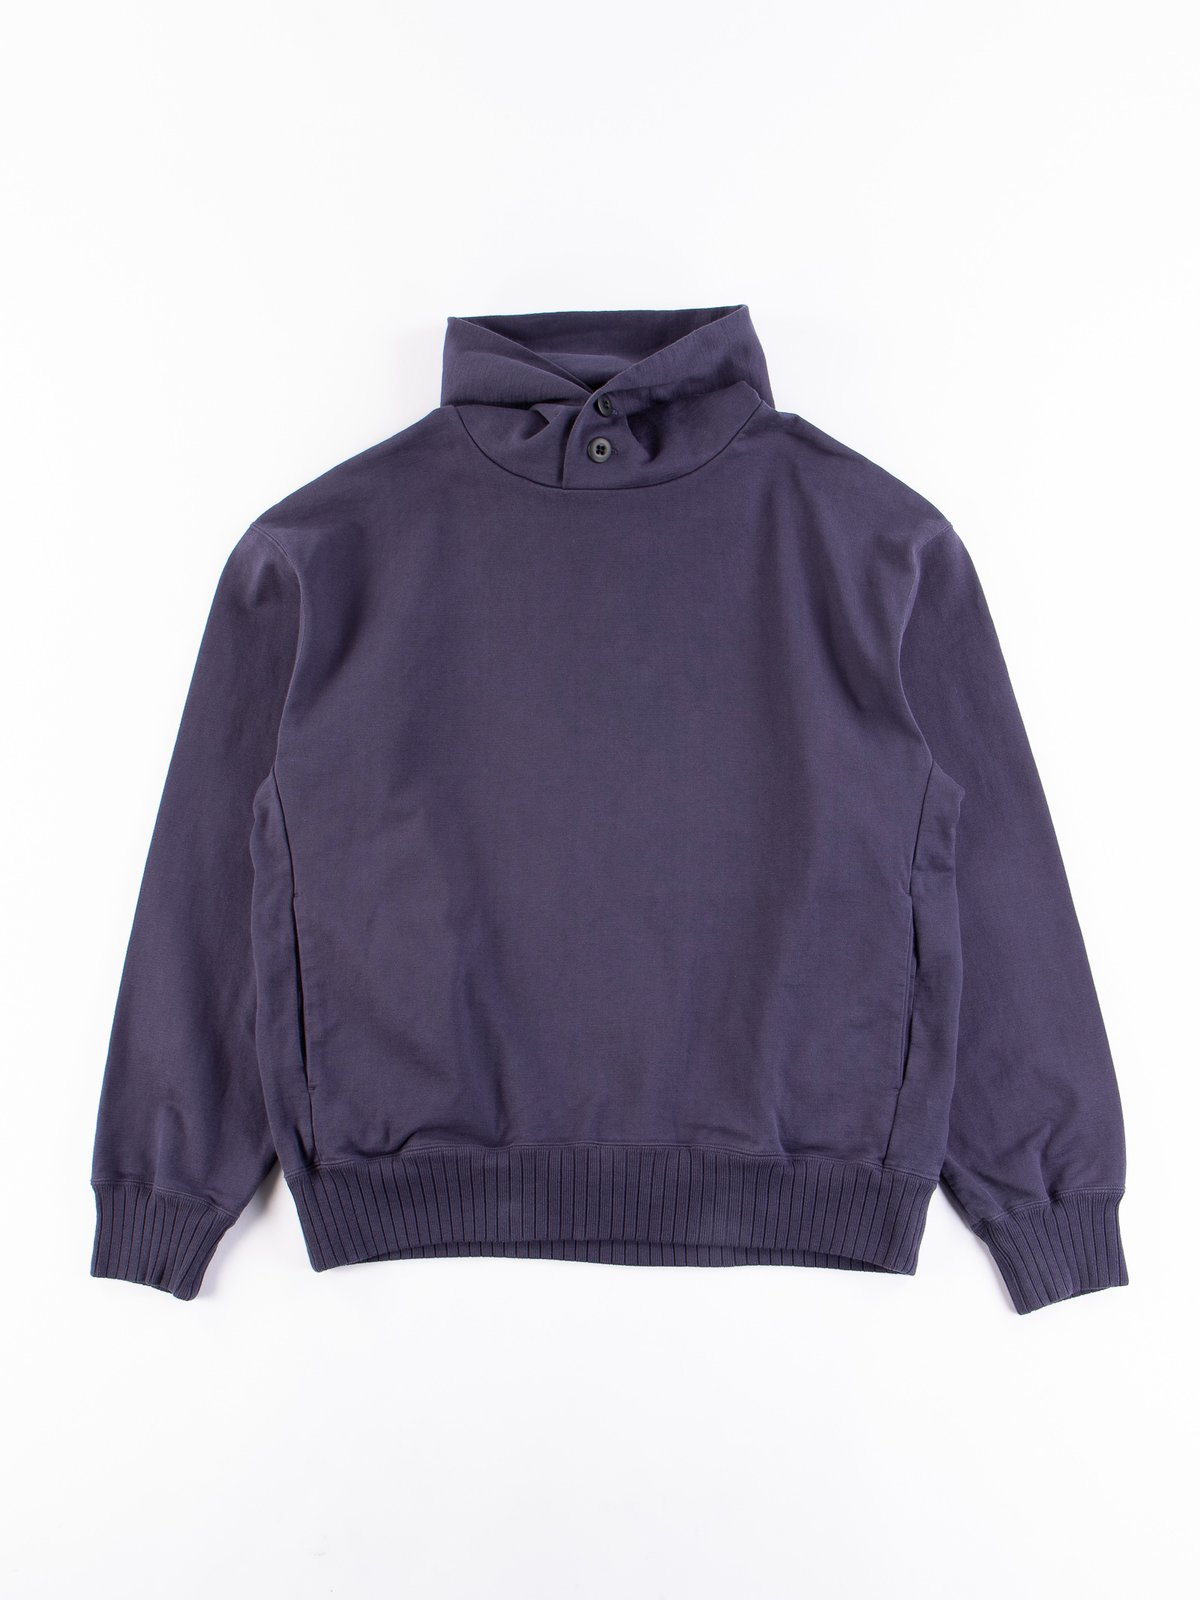 Classic Navy High Density Sweat Pullover Parka - Image 1